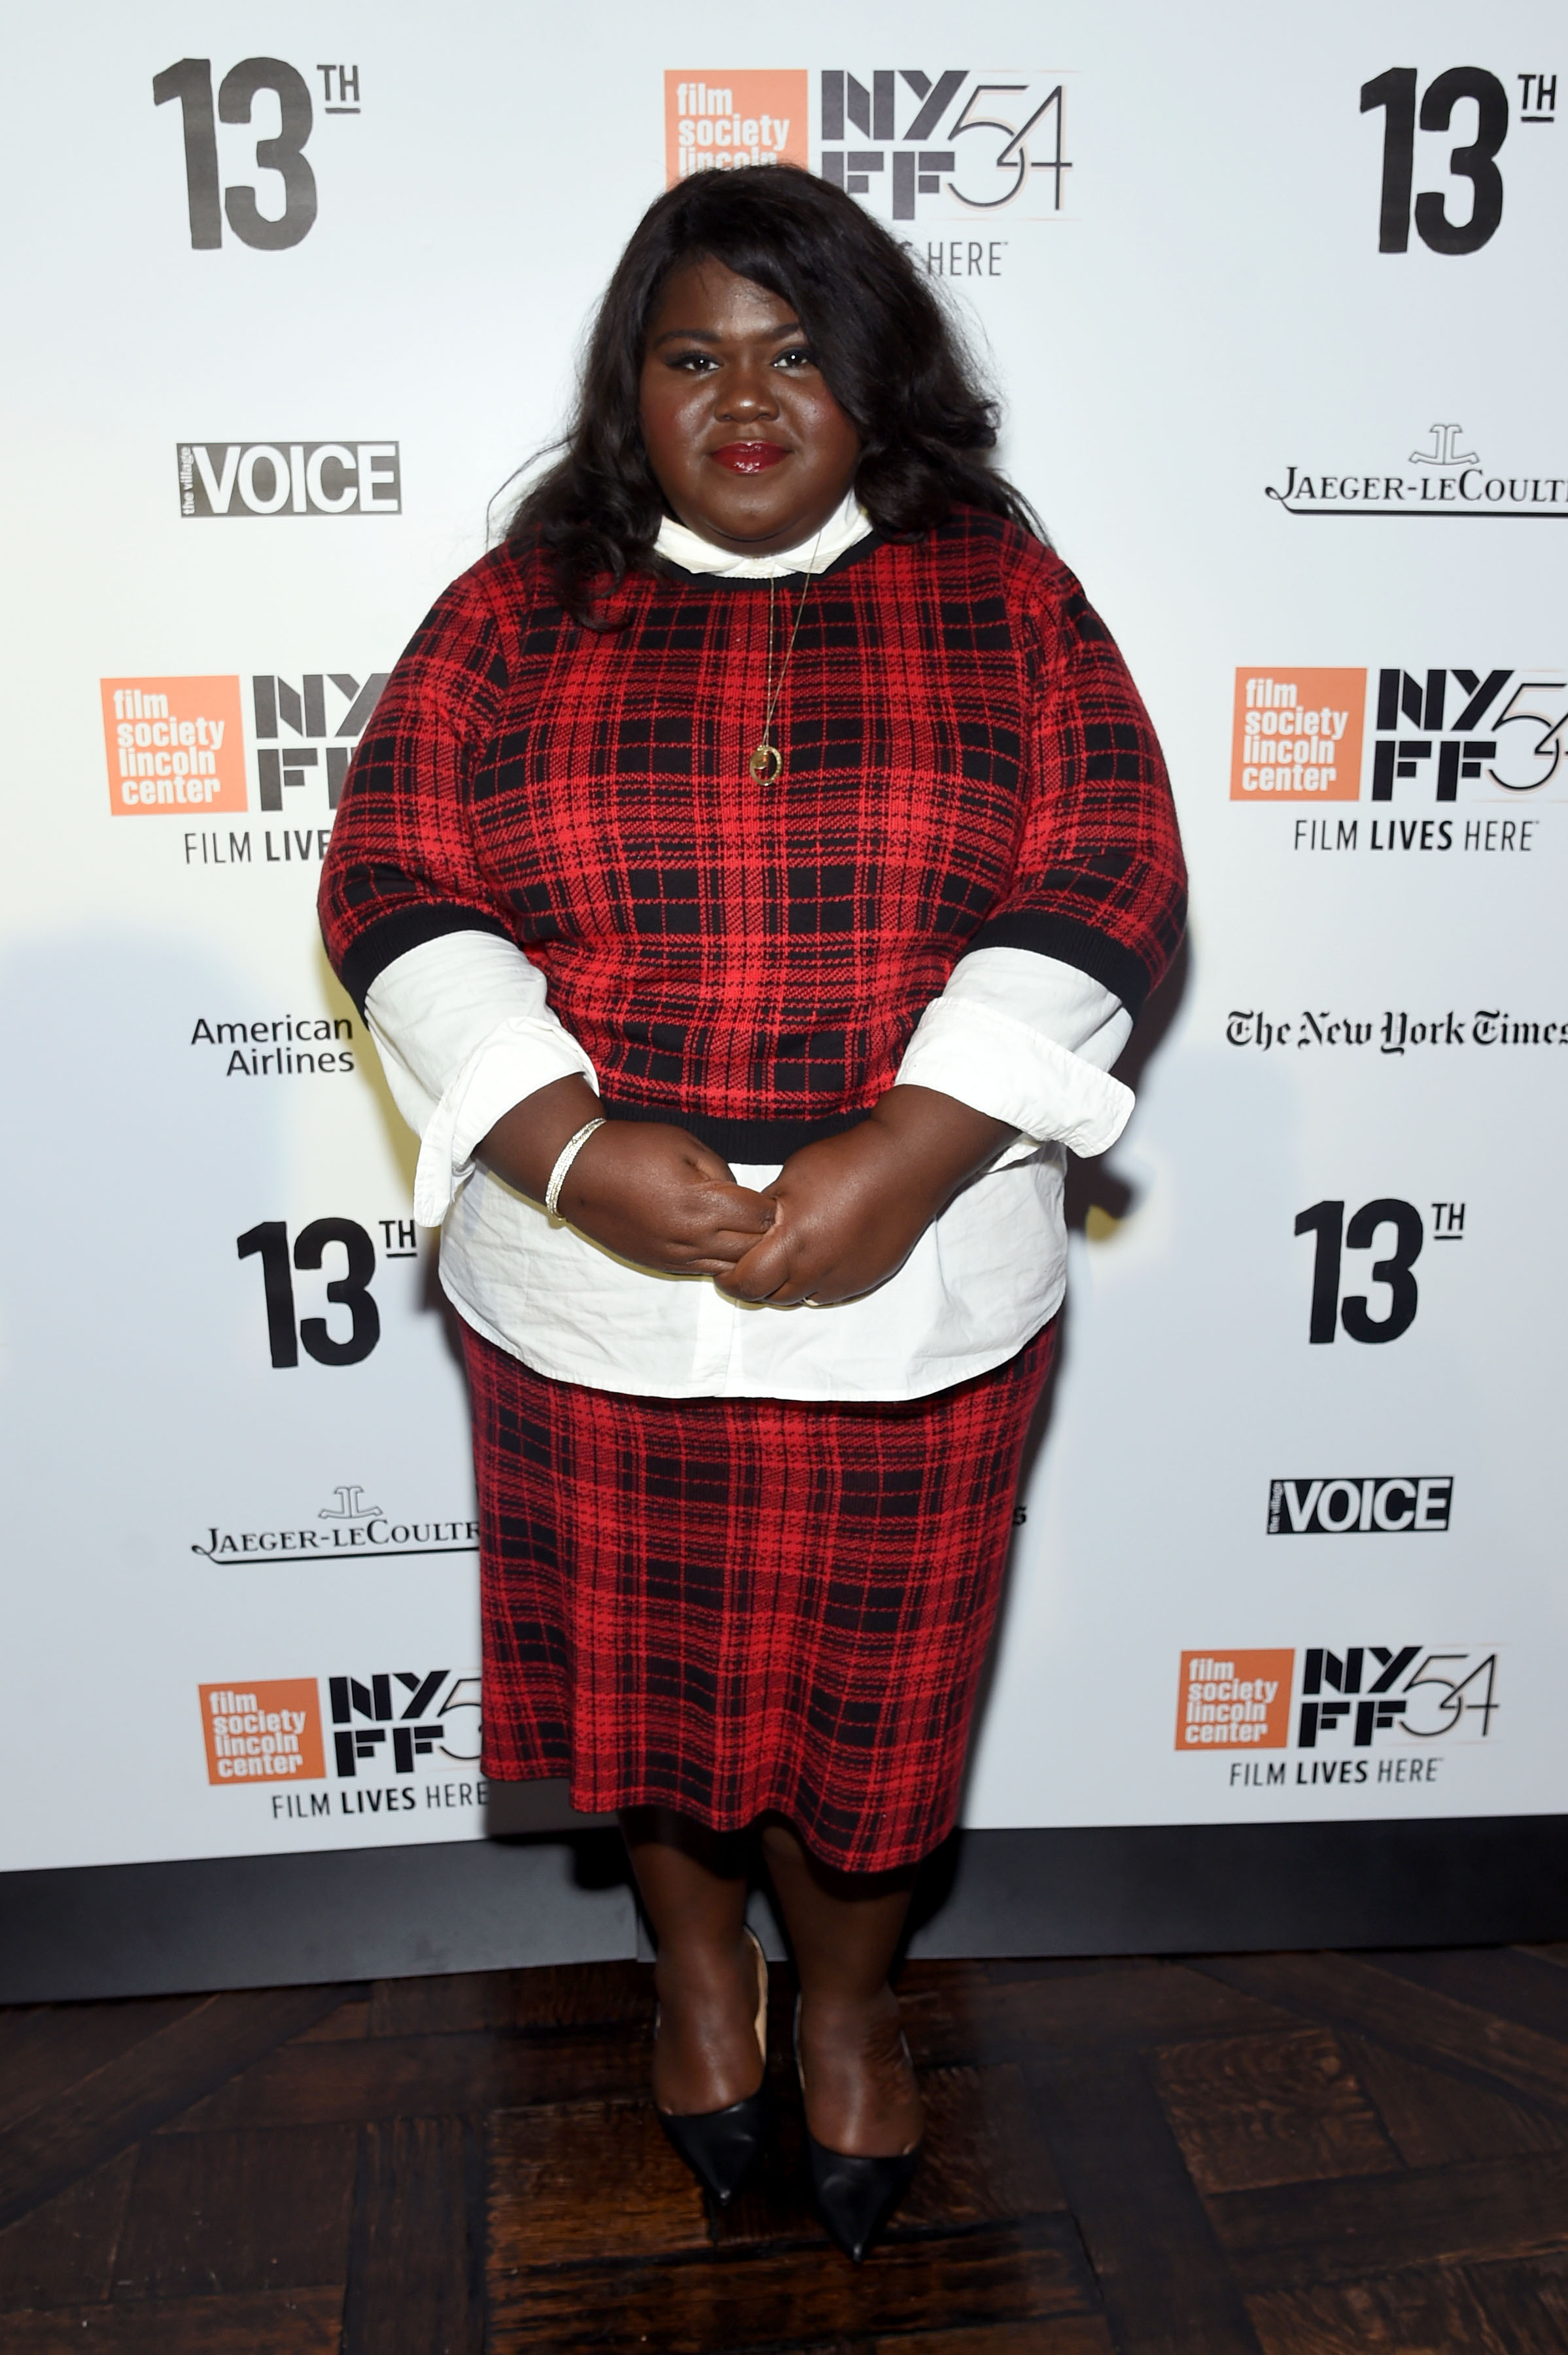 54th New York Film Festival - Opening Night Party